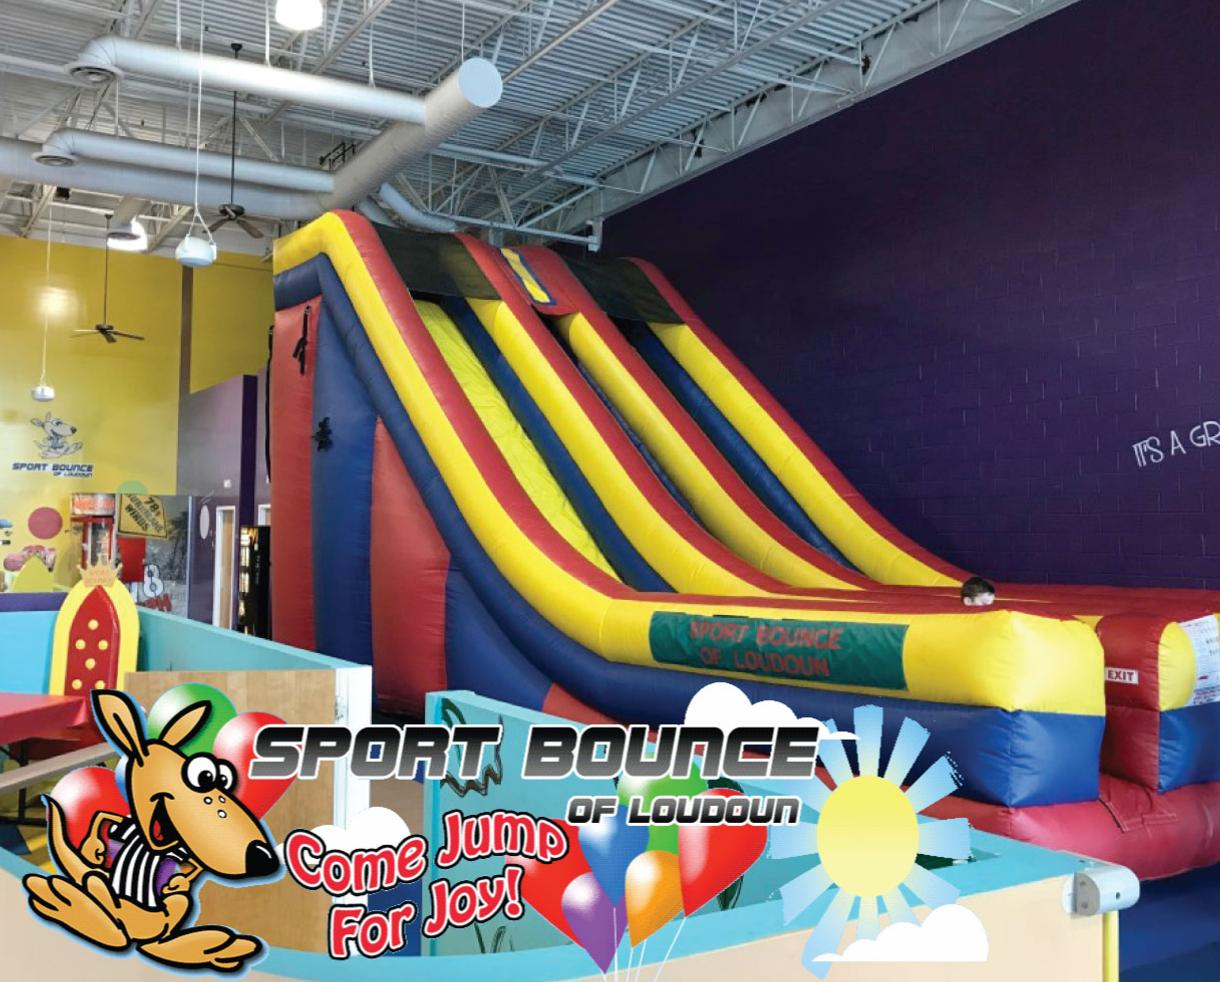 $25 for 5 Open Bounce Passes at Sport Bounce of Loudoun (50% Off)